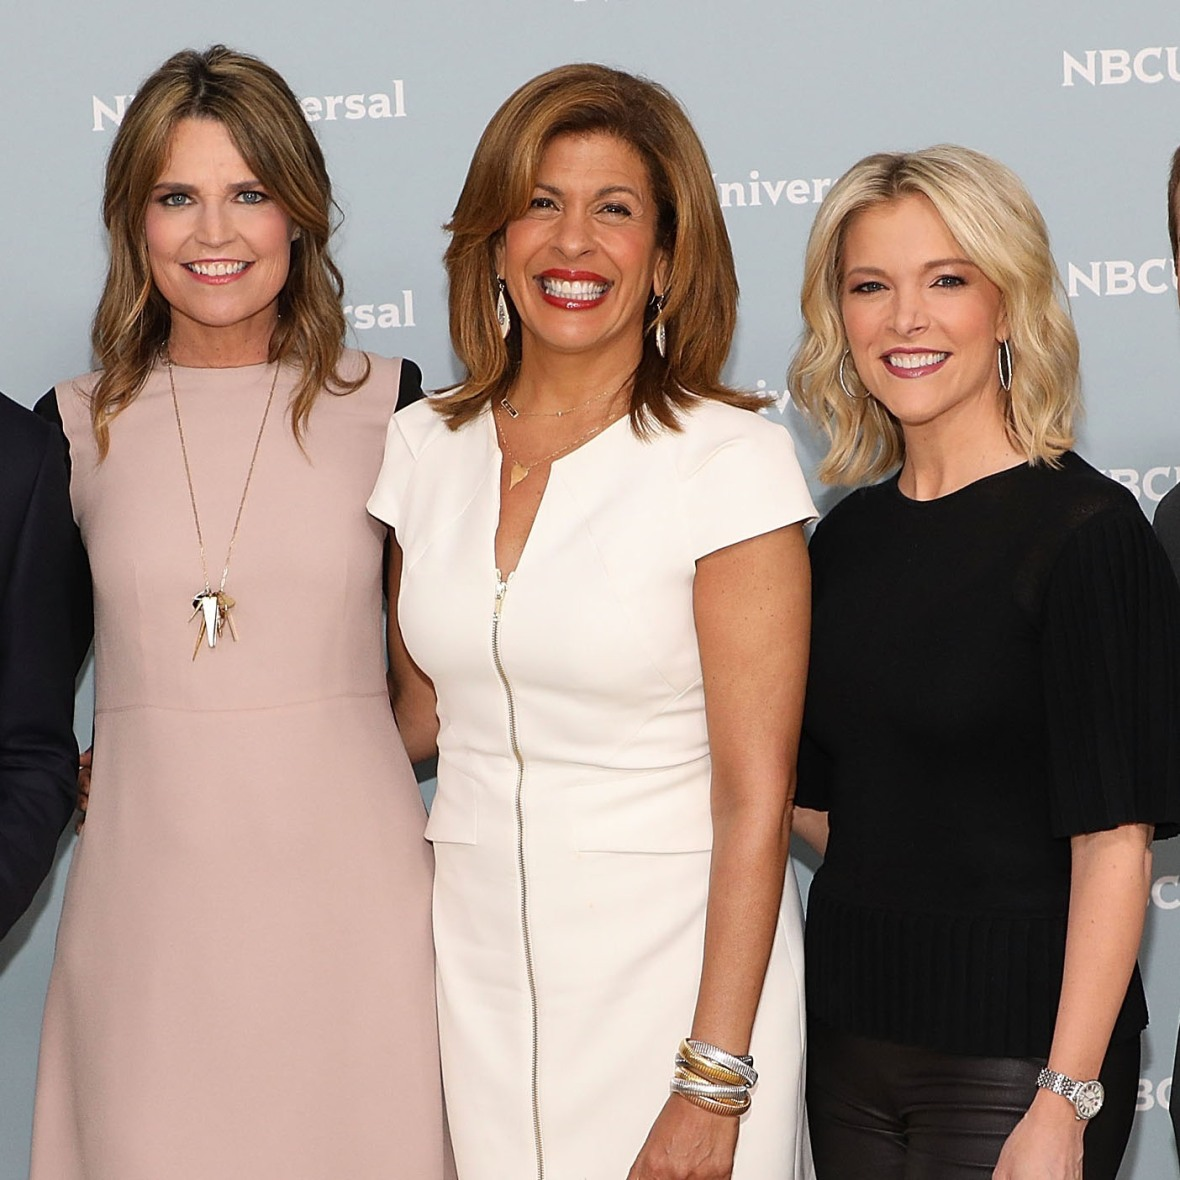 savannah guthrie hoda kotb megyn kelly getty images